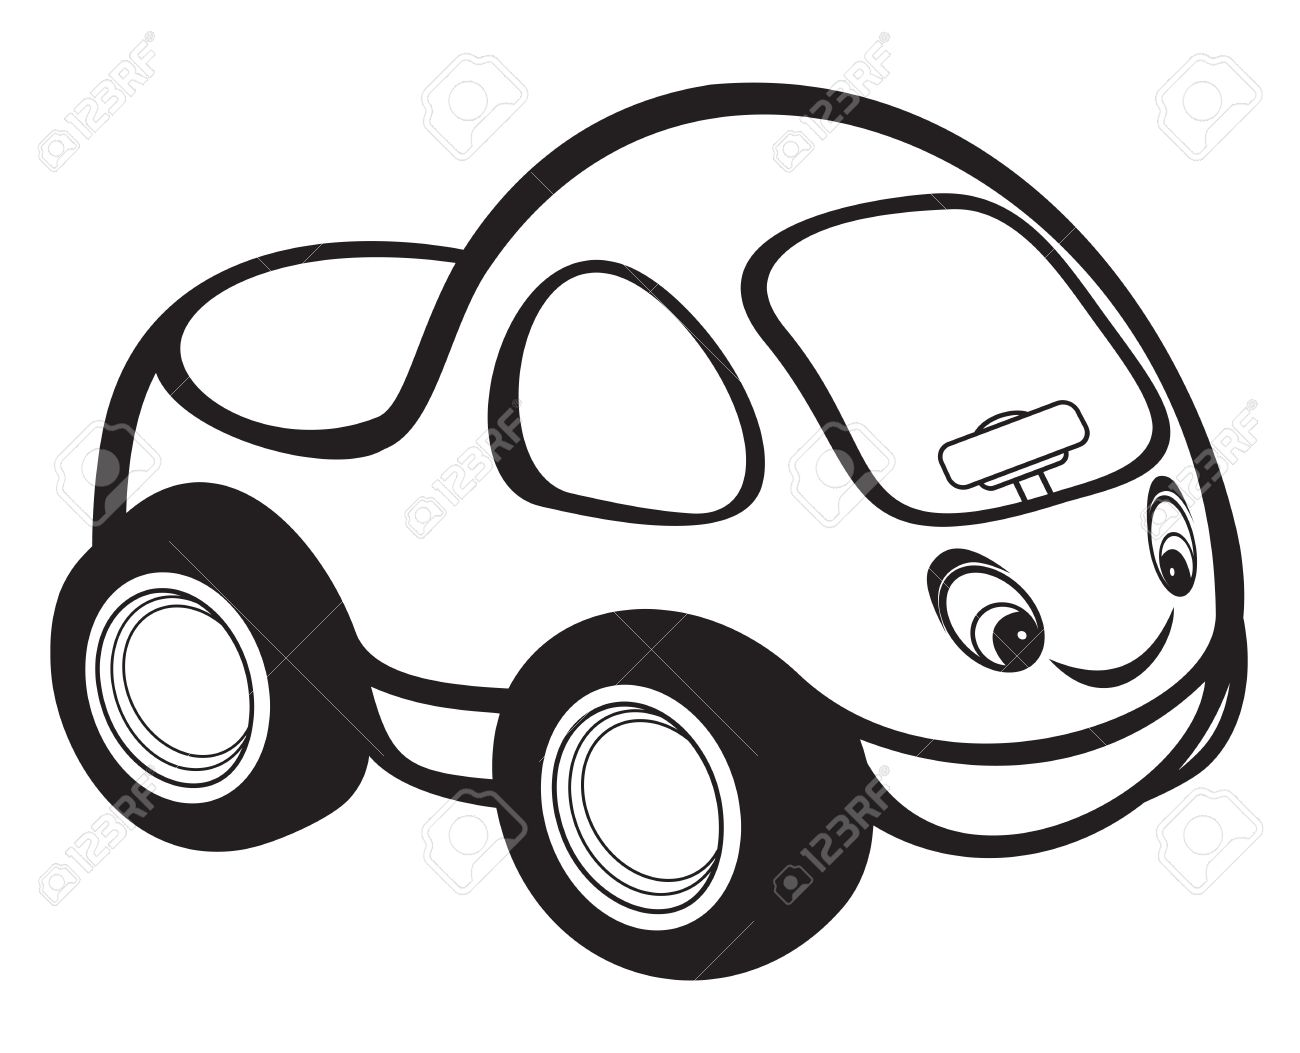 hight resolution of cute kids race car black and white stock vector 15971456